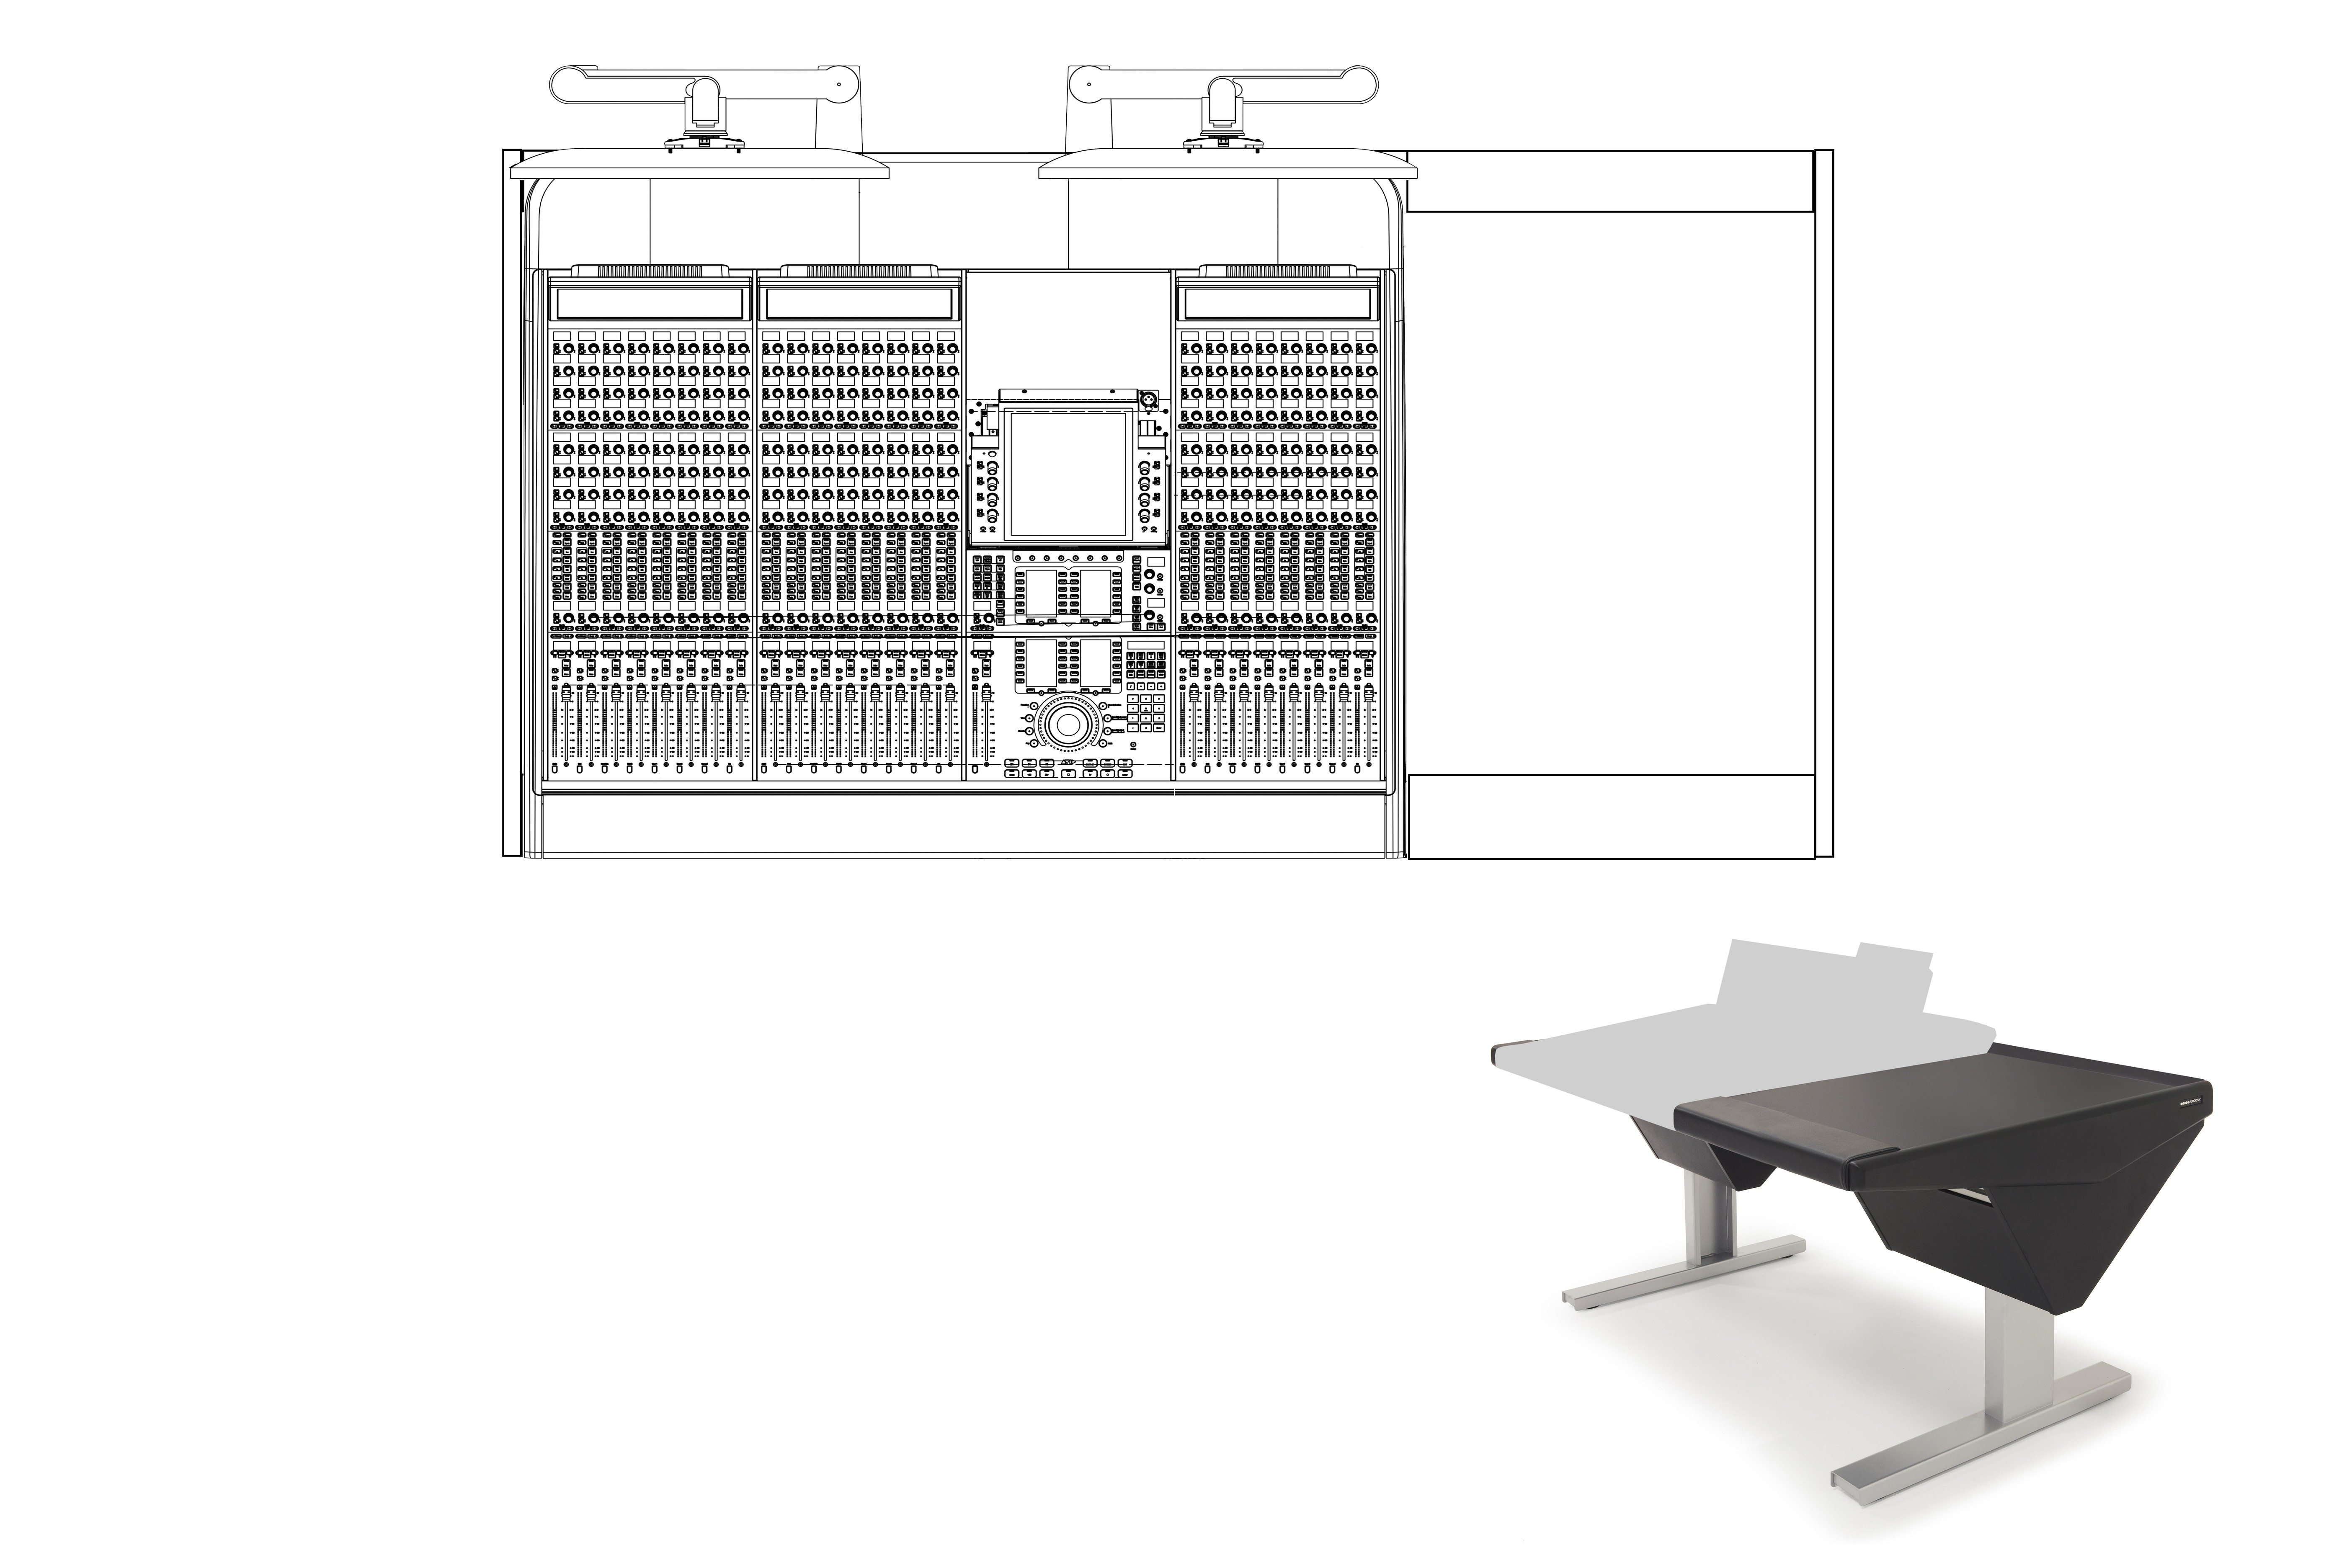 24 Fader System with Desk (R)